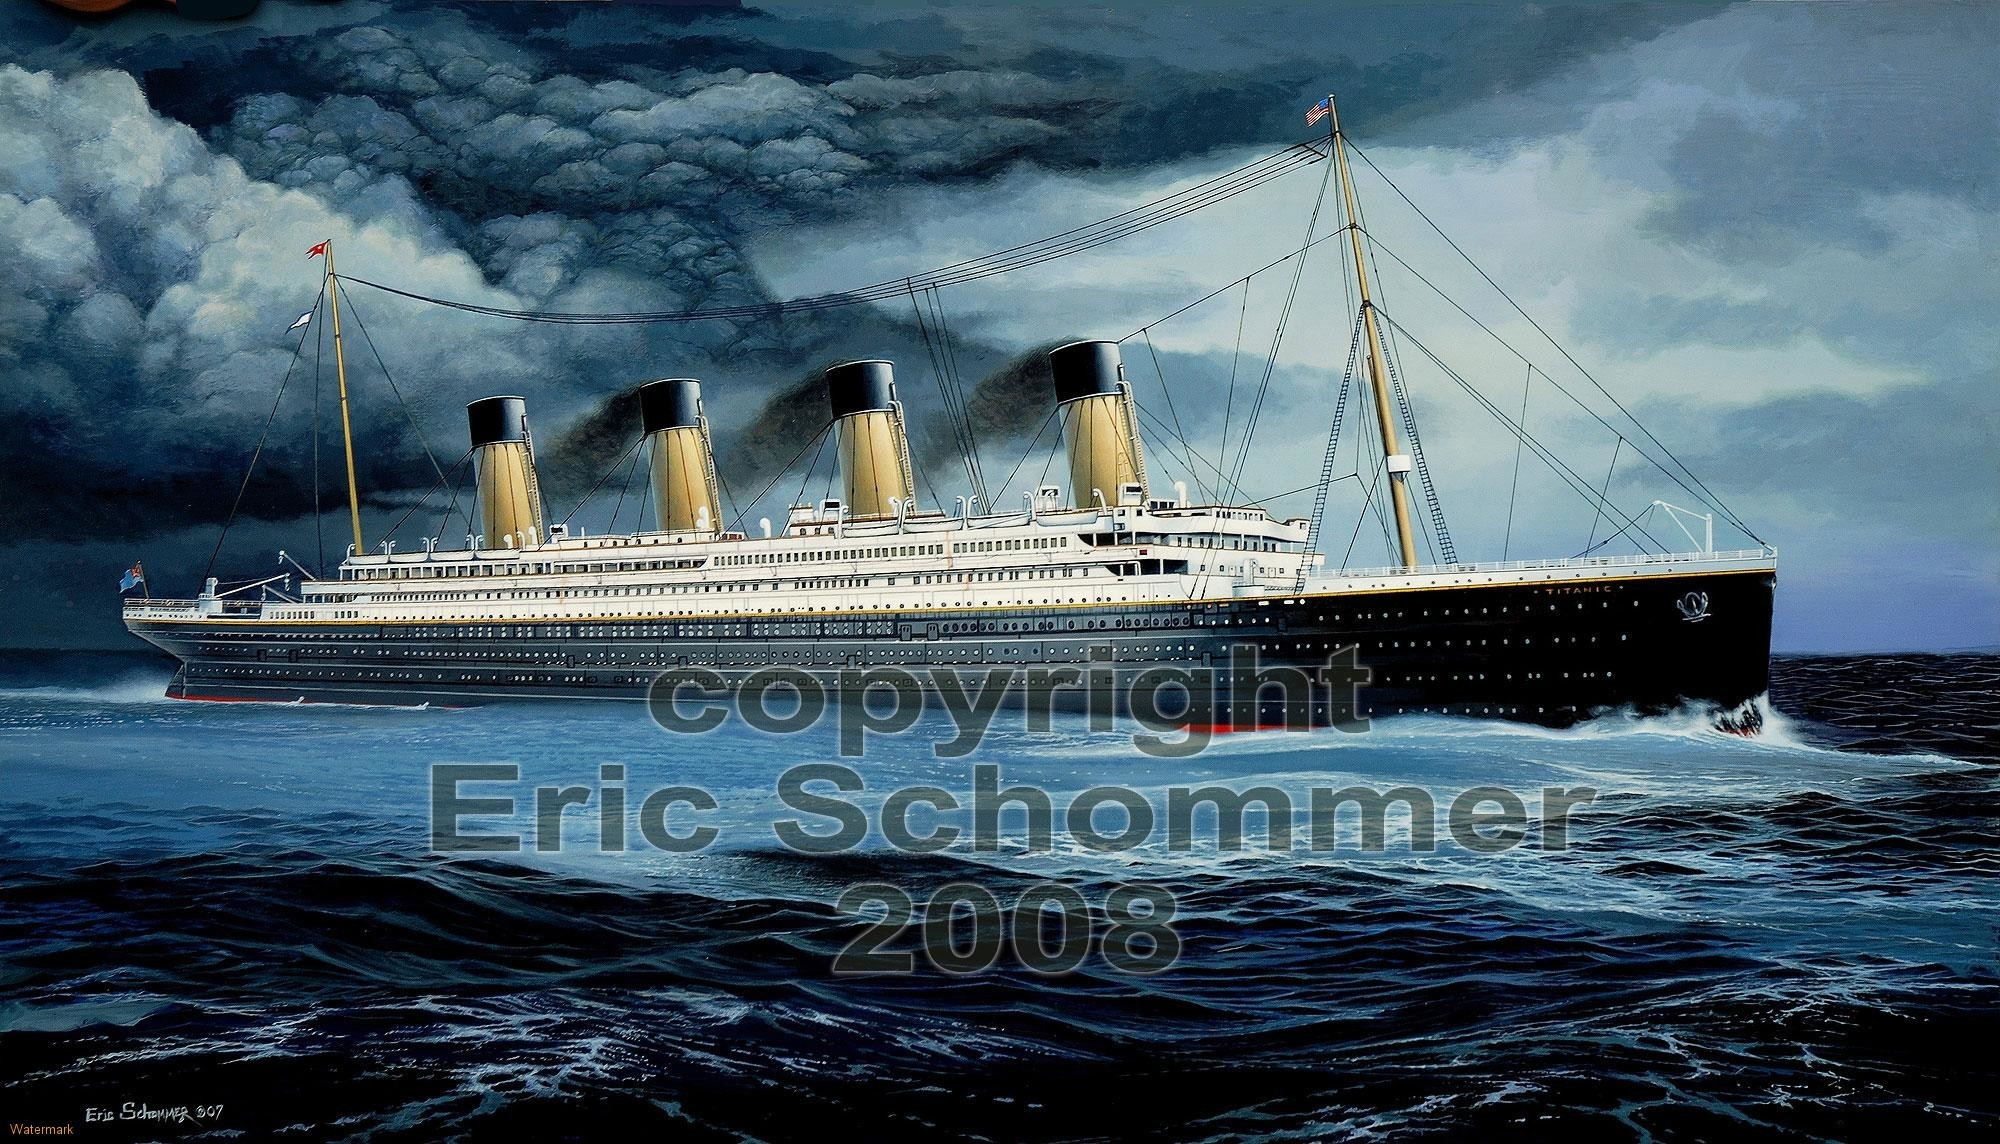 2000x1144 0 Wallpapers Of Titanic Wallpapers Of Titanic Ship